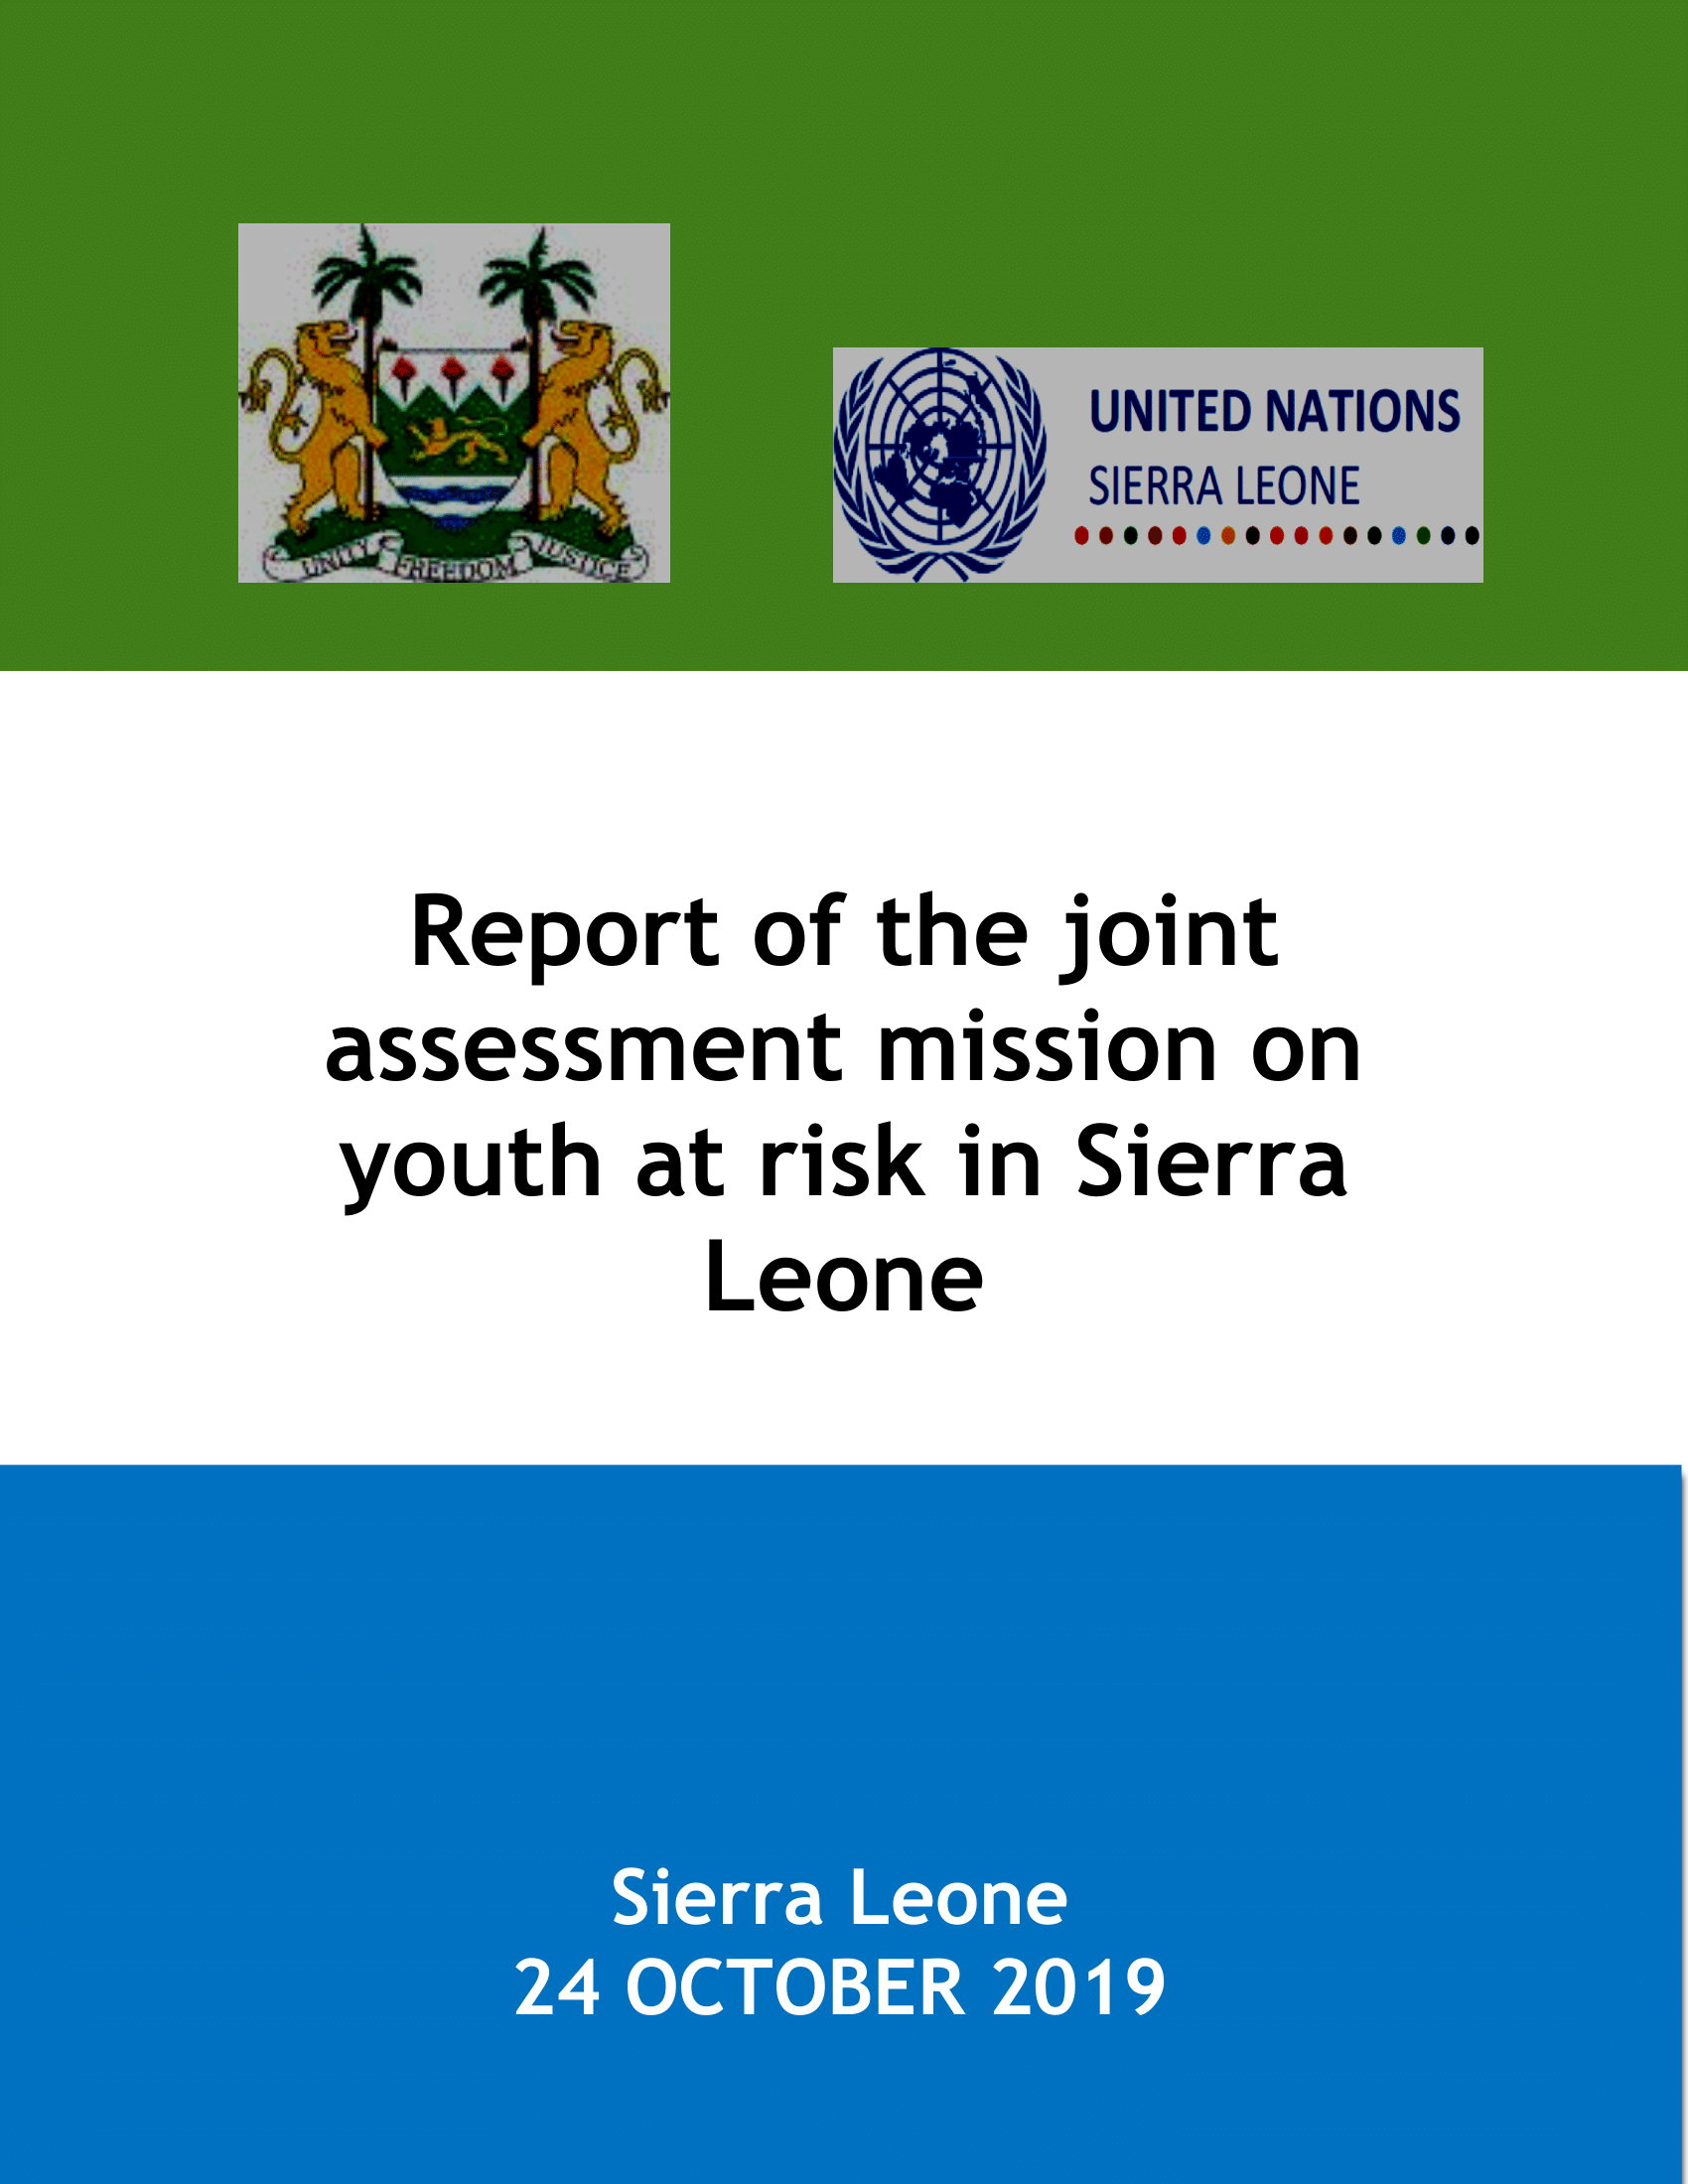 Report of the joint assessment mission on youth at risk in Sierra Leone